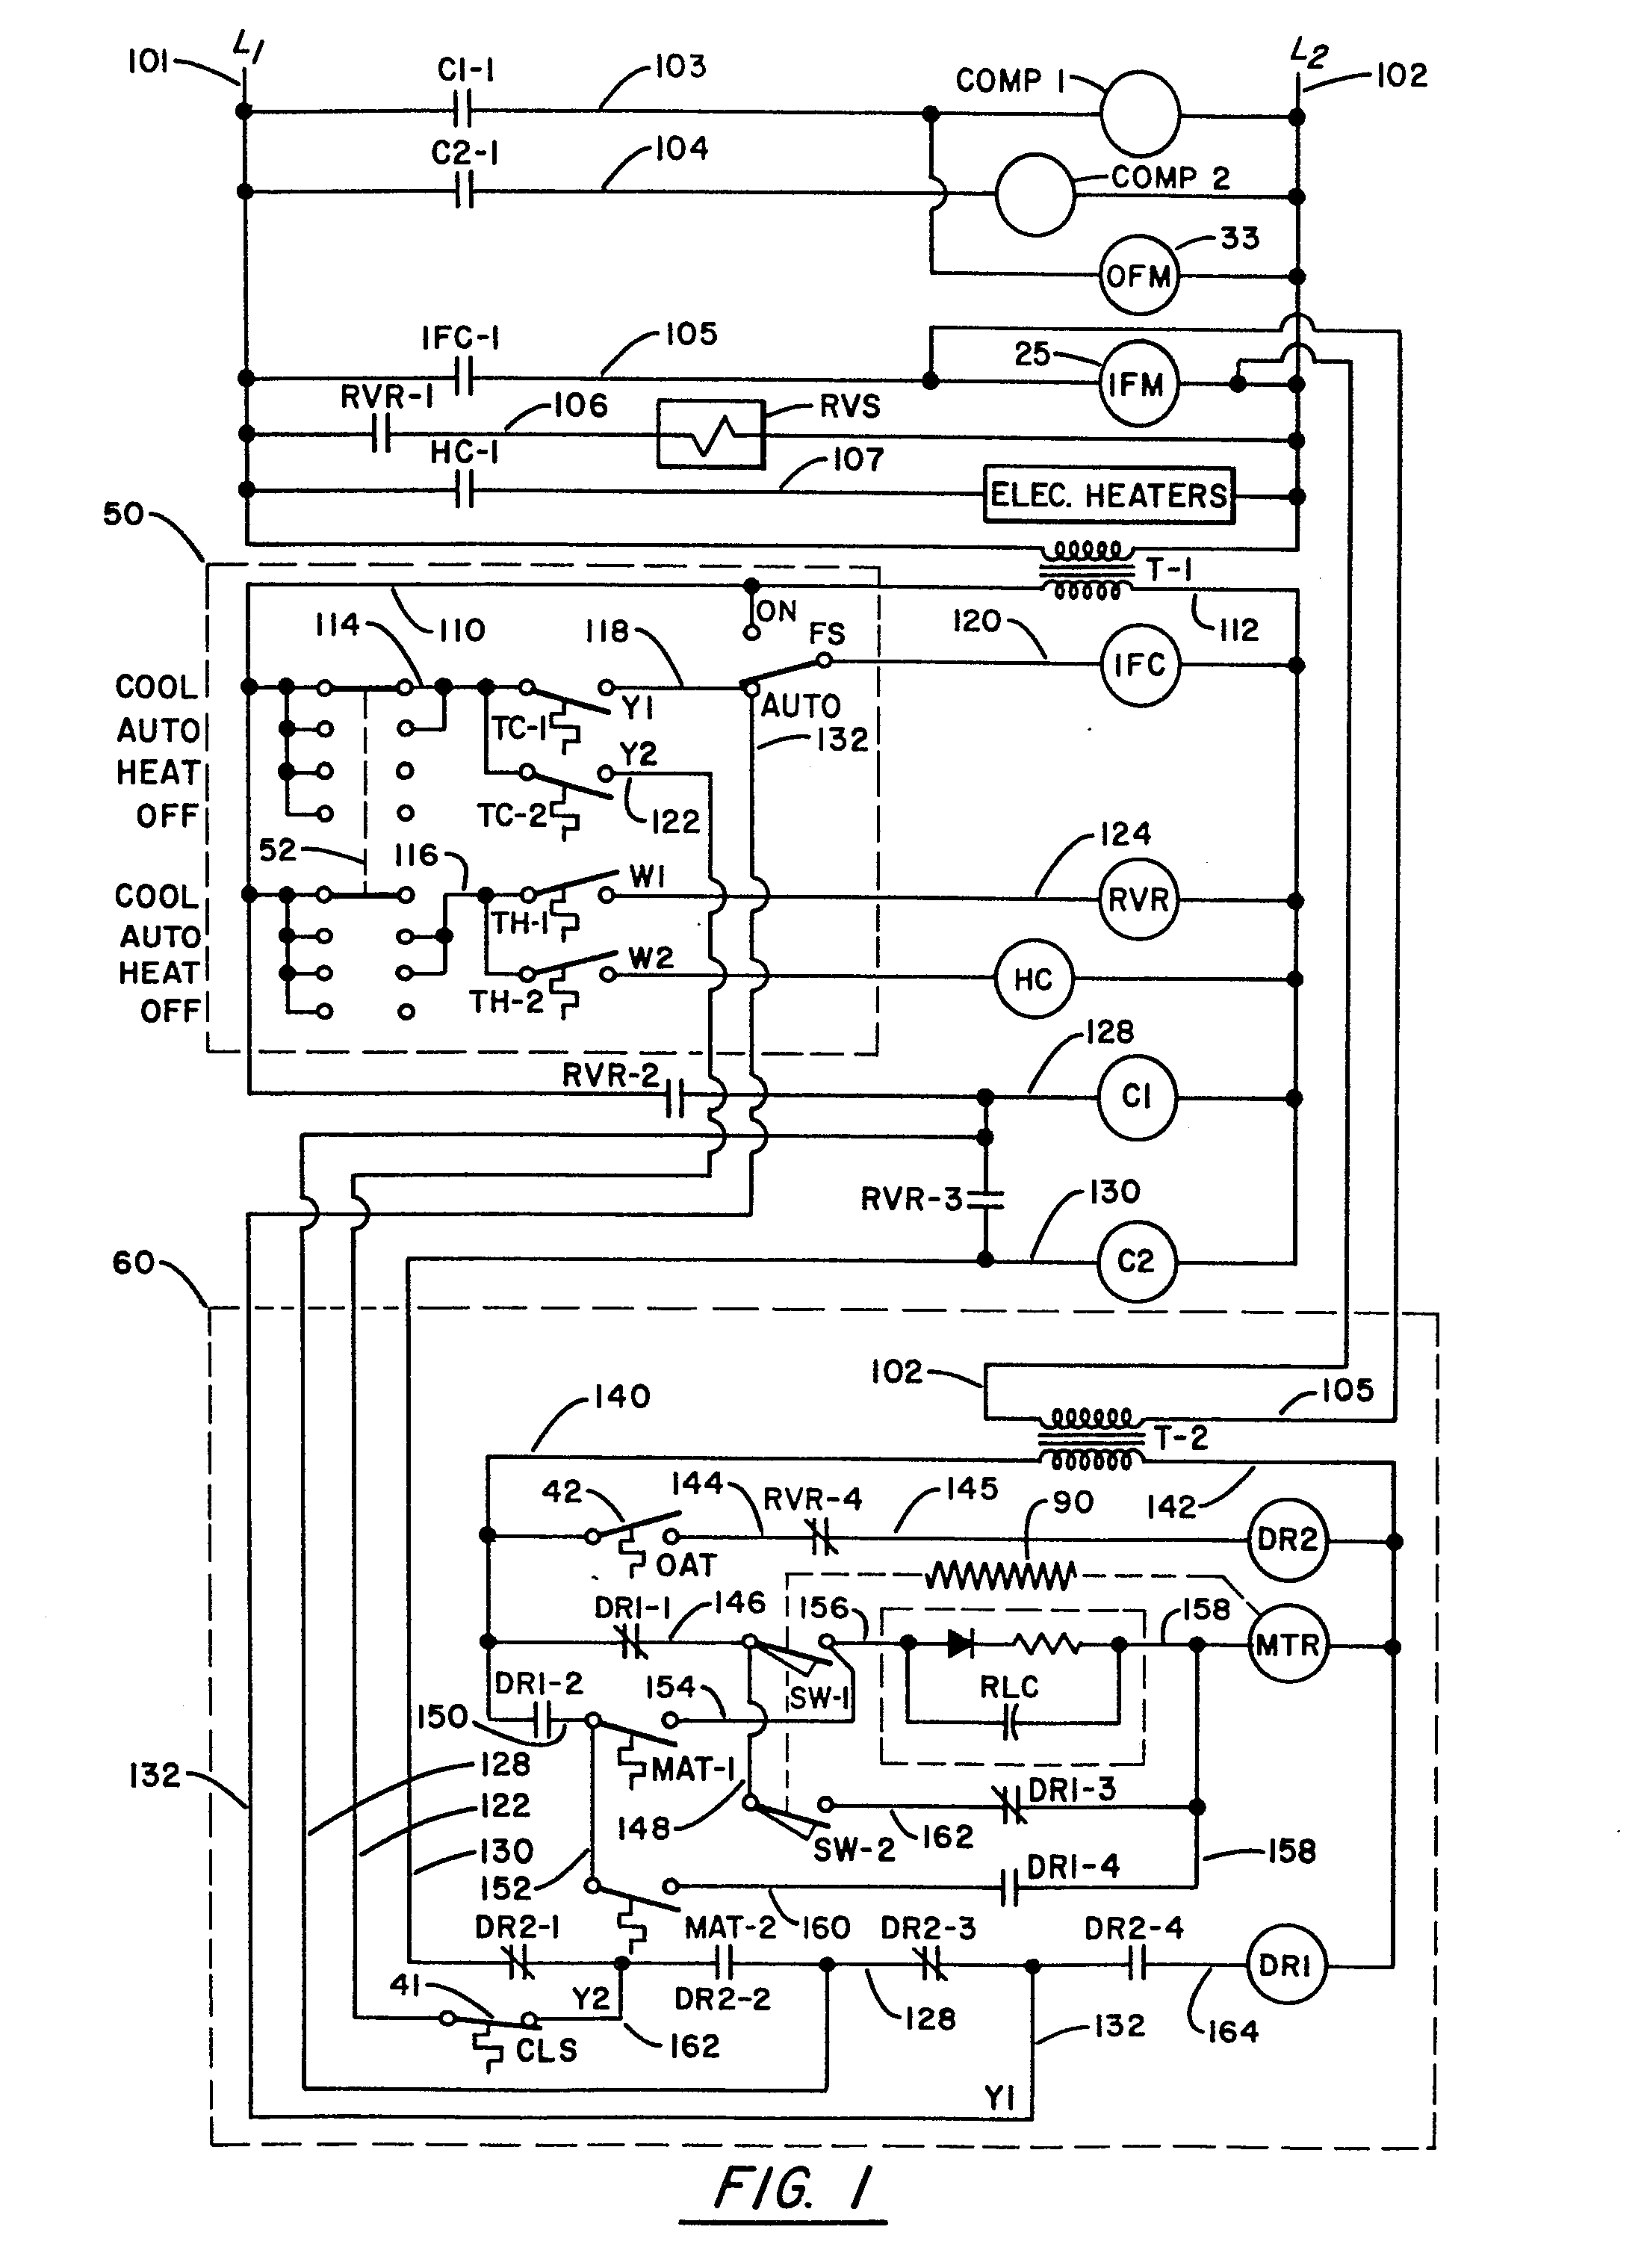 imgf0001?resize\\\\\\\\\\\\\\\\\\\\\\\\\\\\\=665%2C914 john deere 425 wiring diagram wiring diagrams john deere 425 wiring diagram download at pacquiaovsvargaslive.co